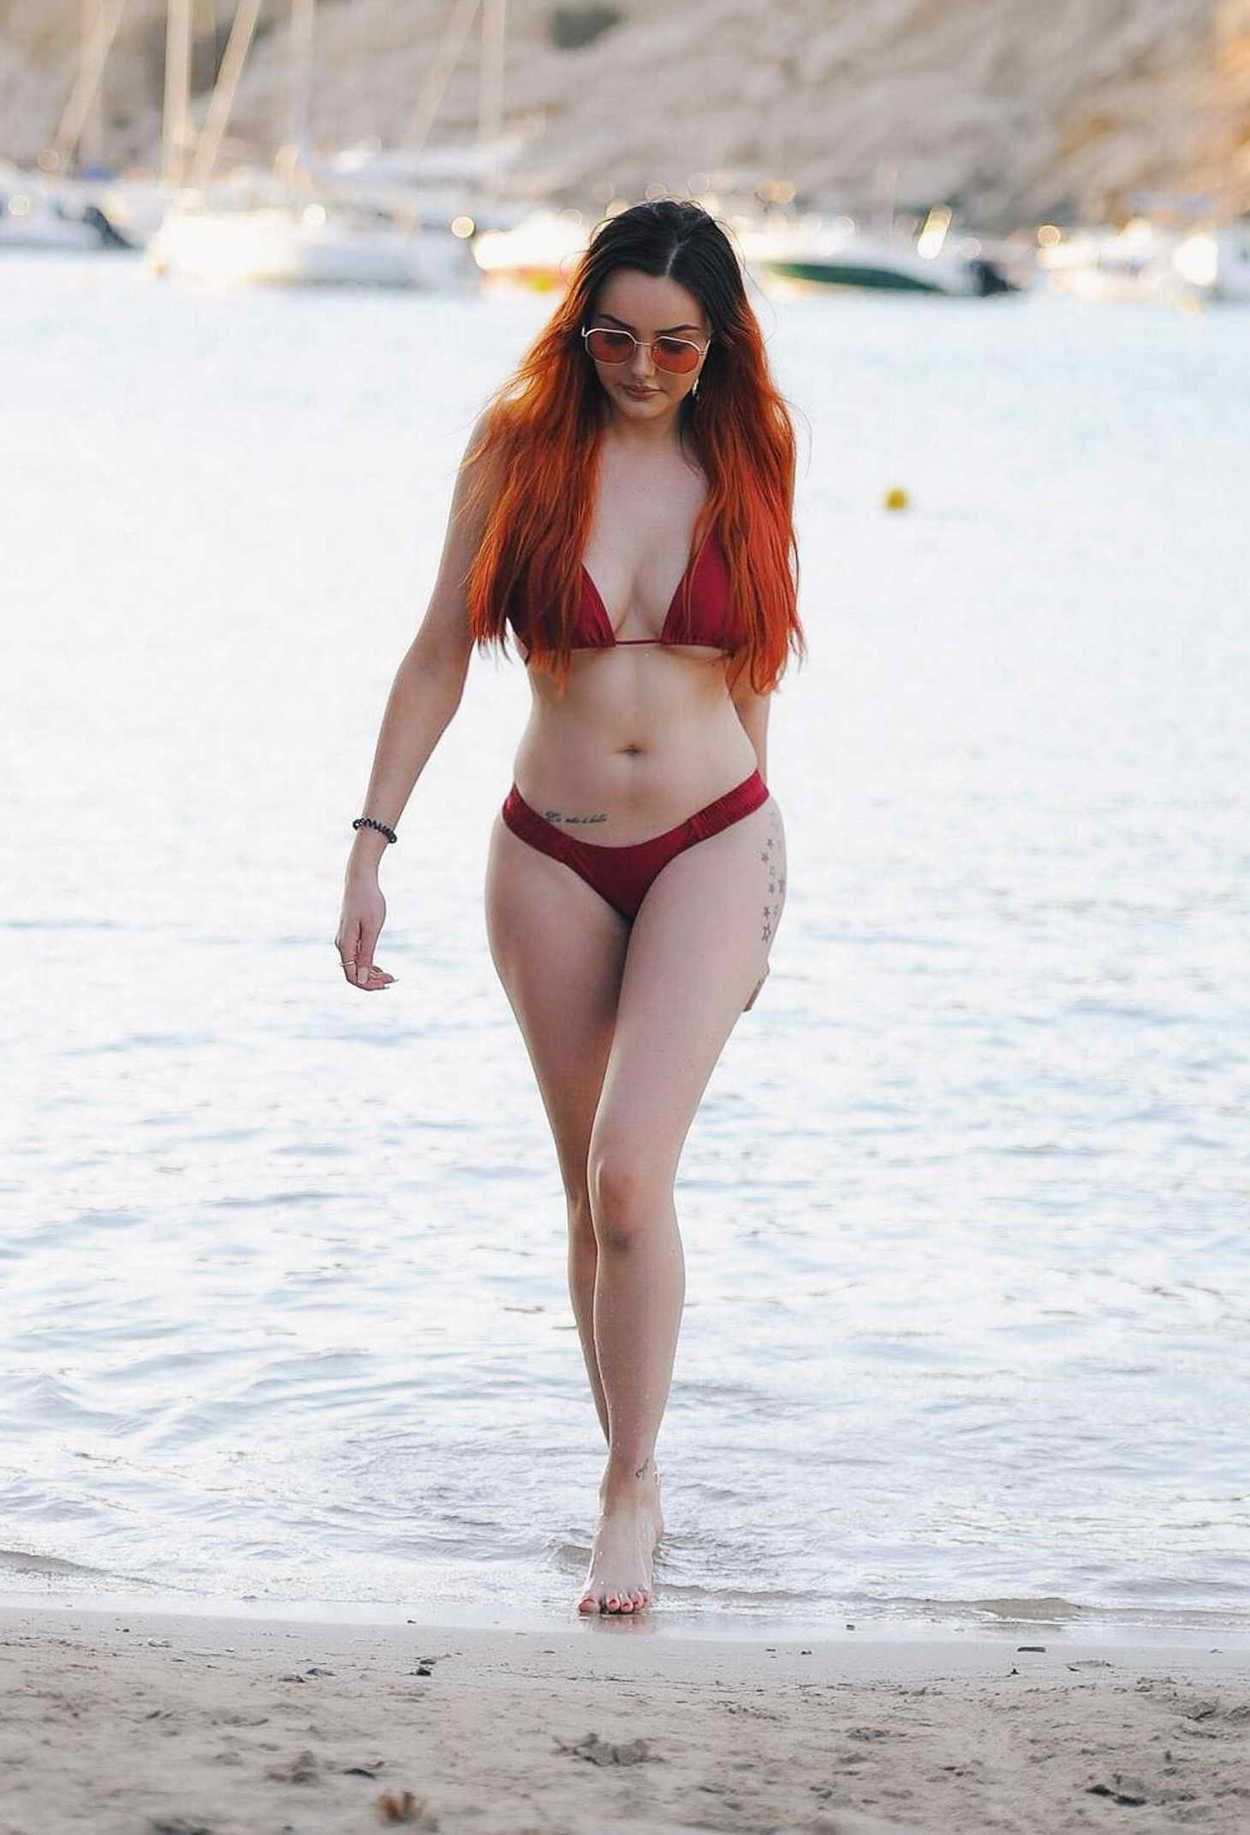 Sarah Goodhart in Red Bikini on the beach in Tenerife